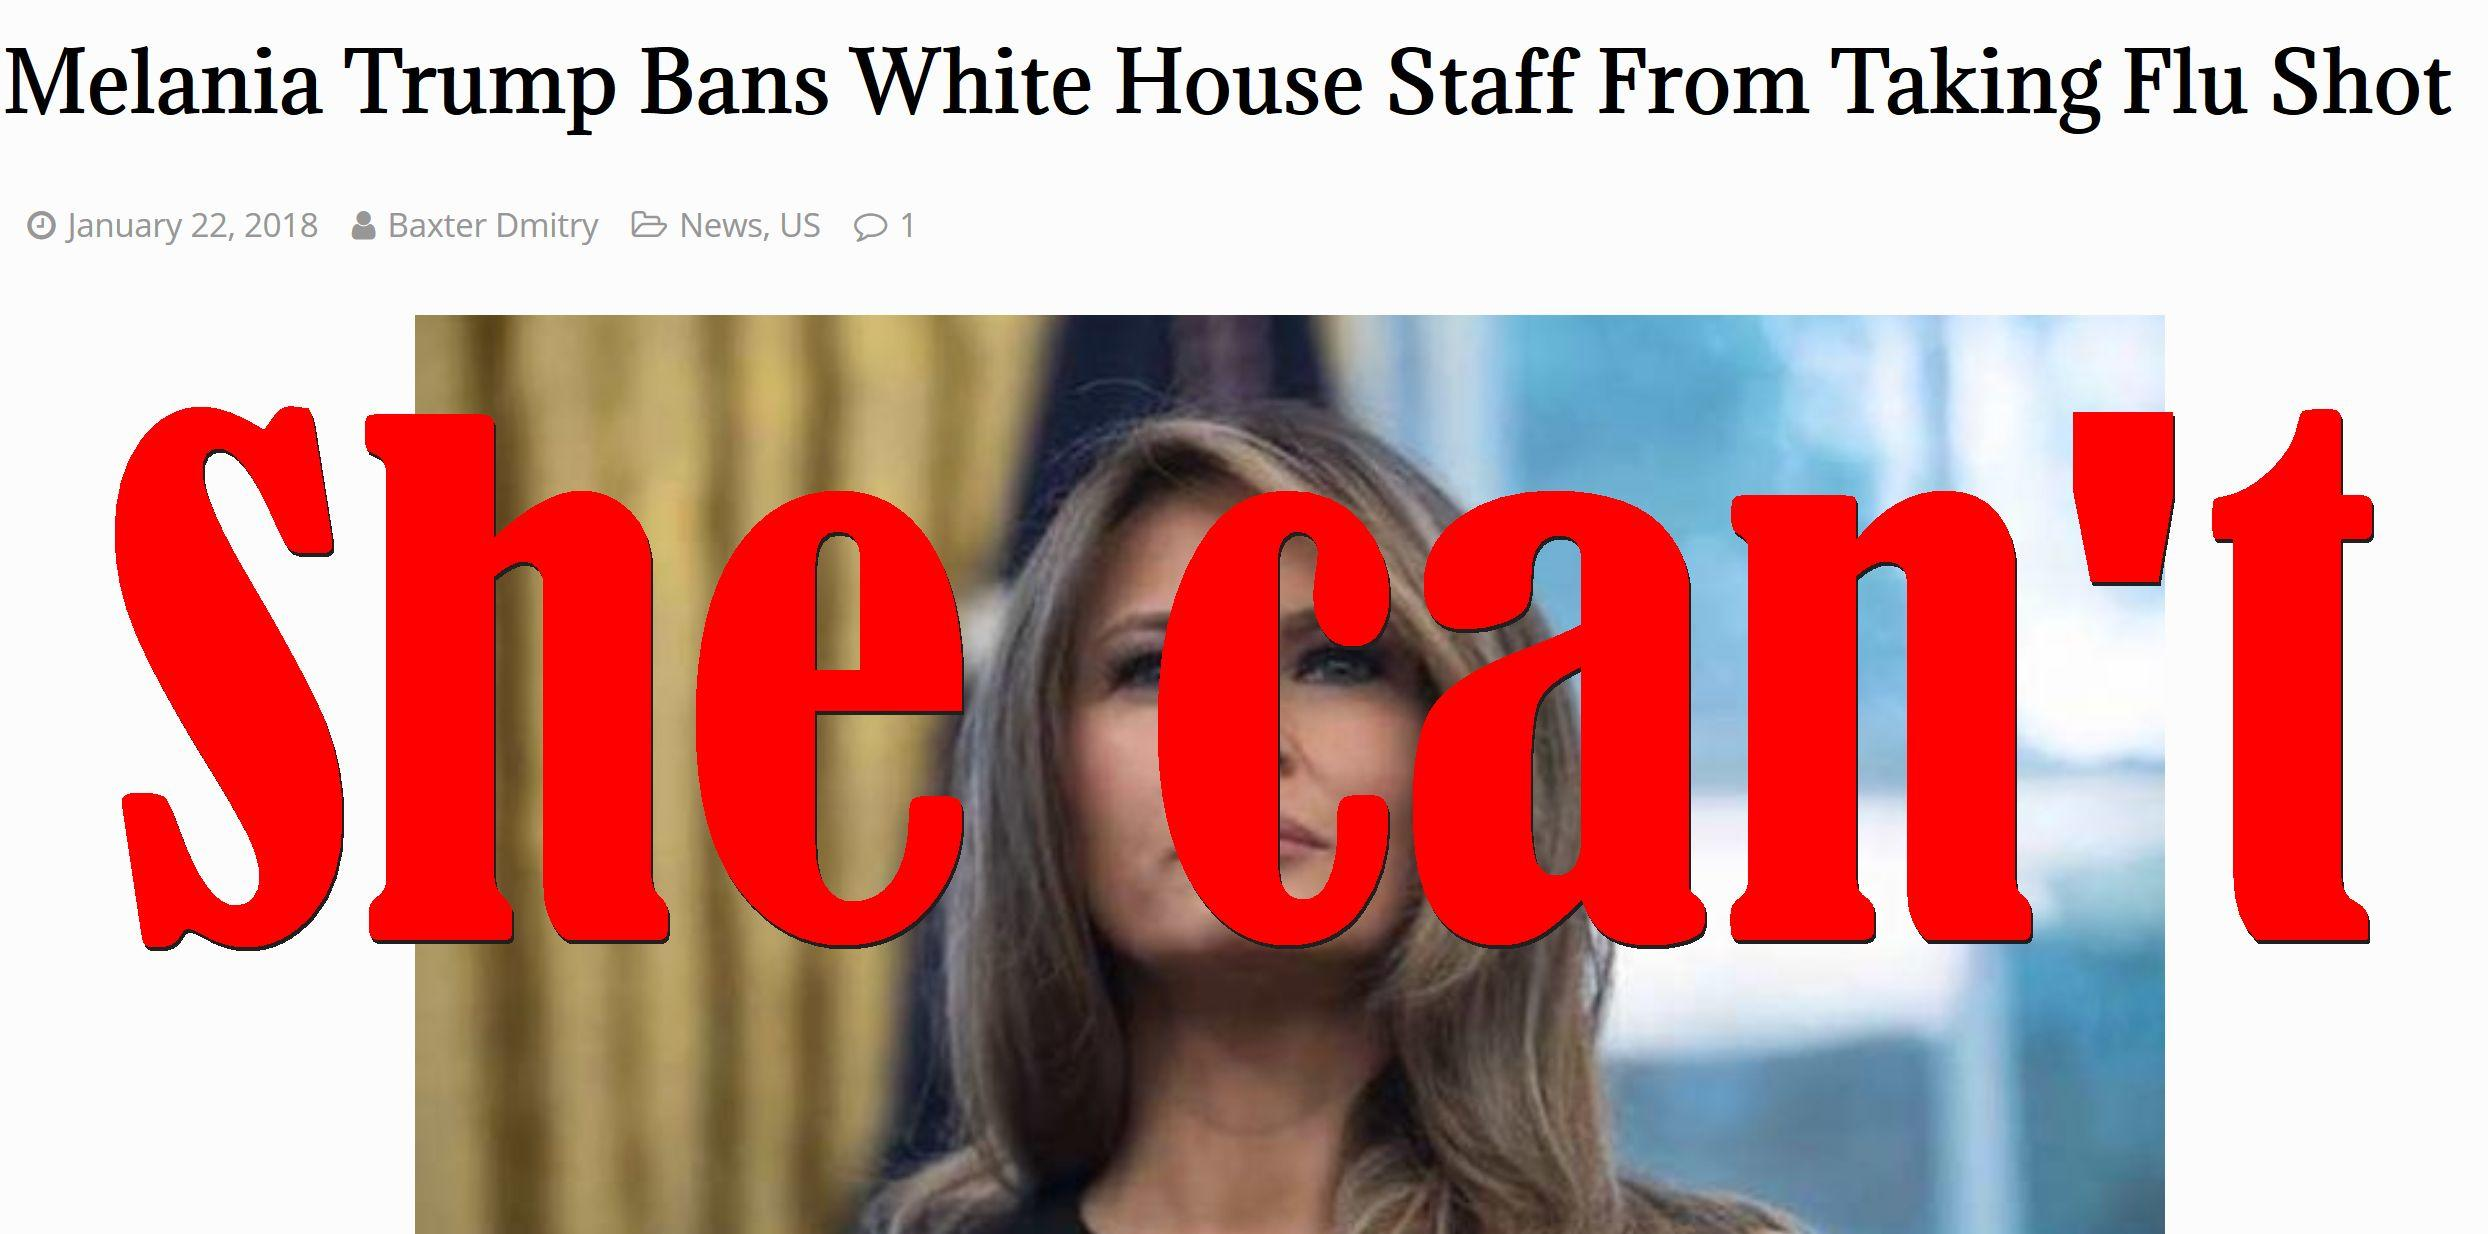 Fake News: Melania Trump Did NOT Ban White House Staff From Taking Flu Shot